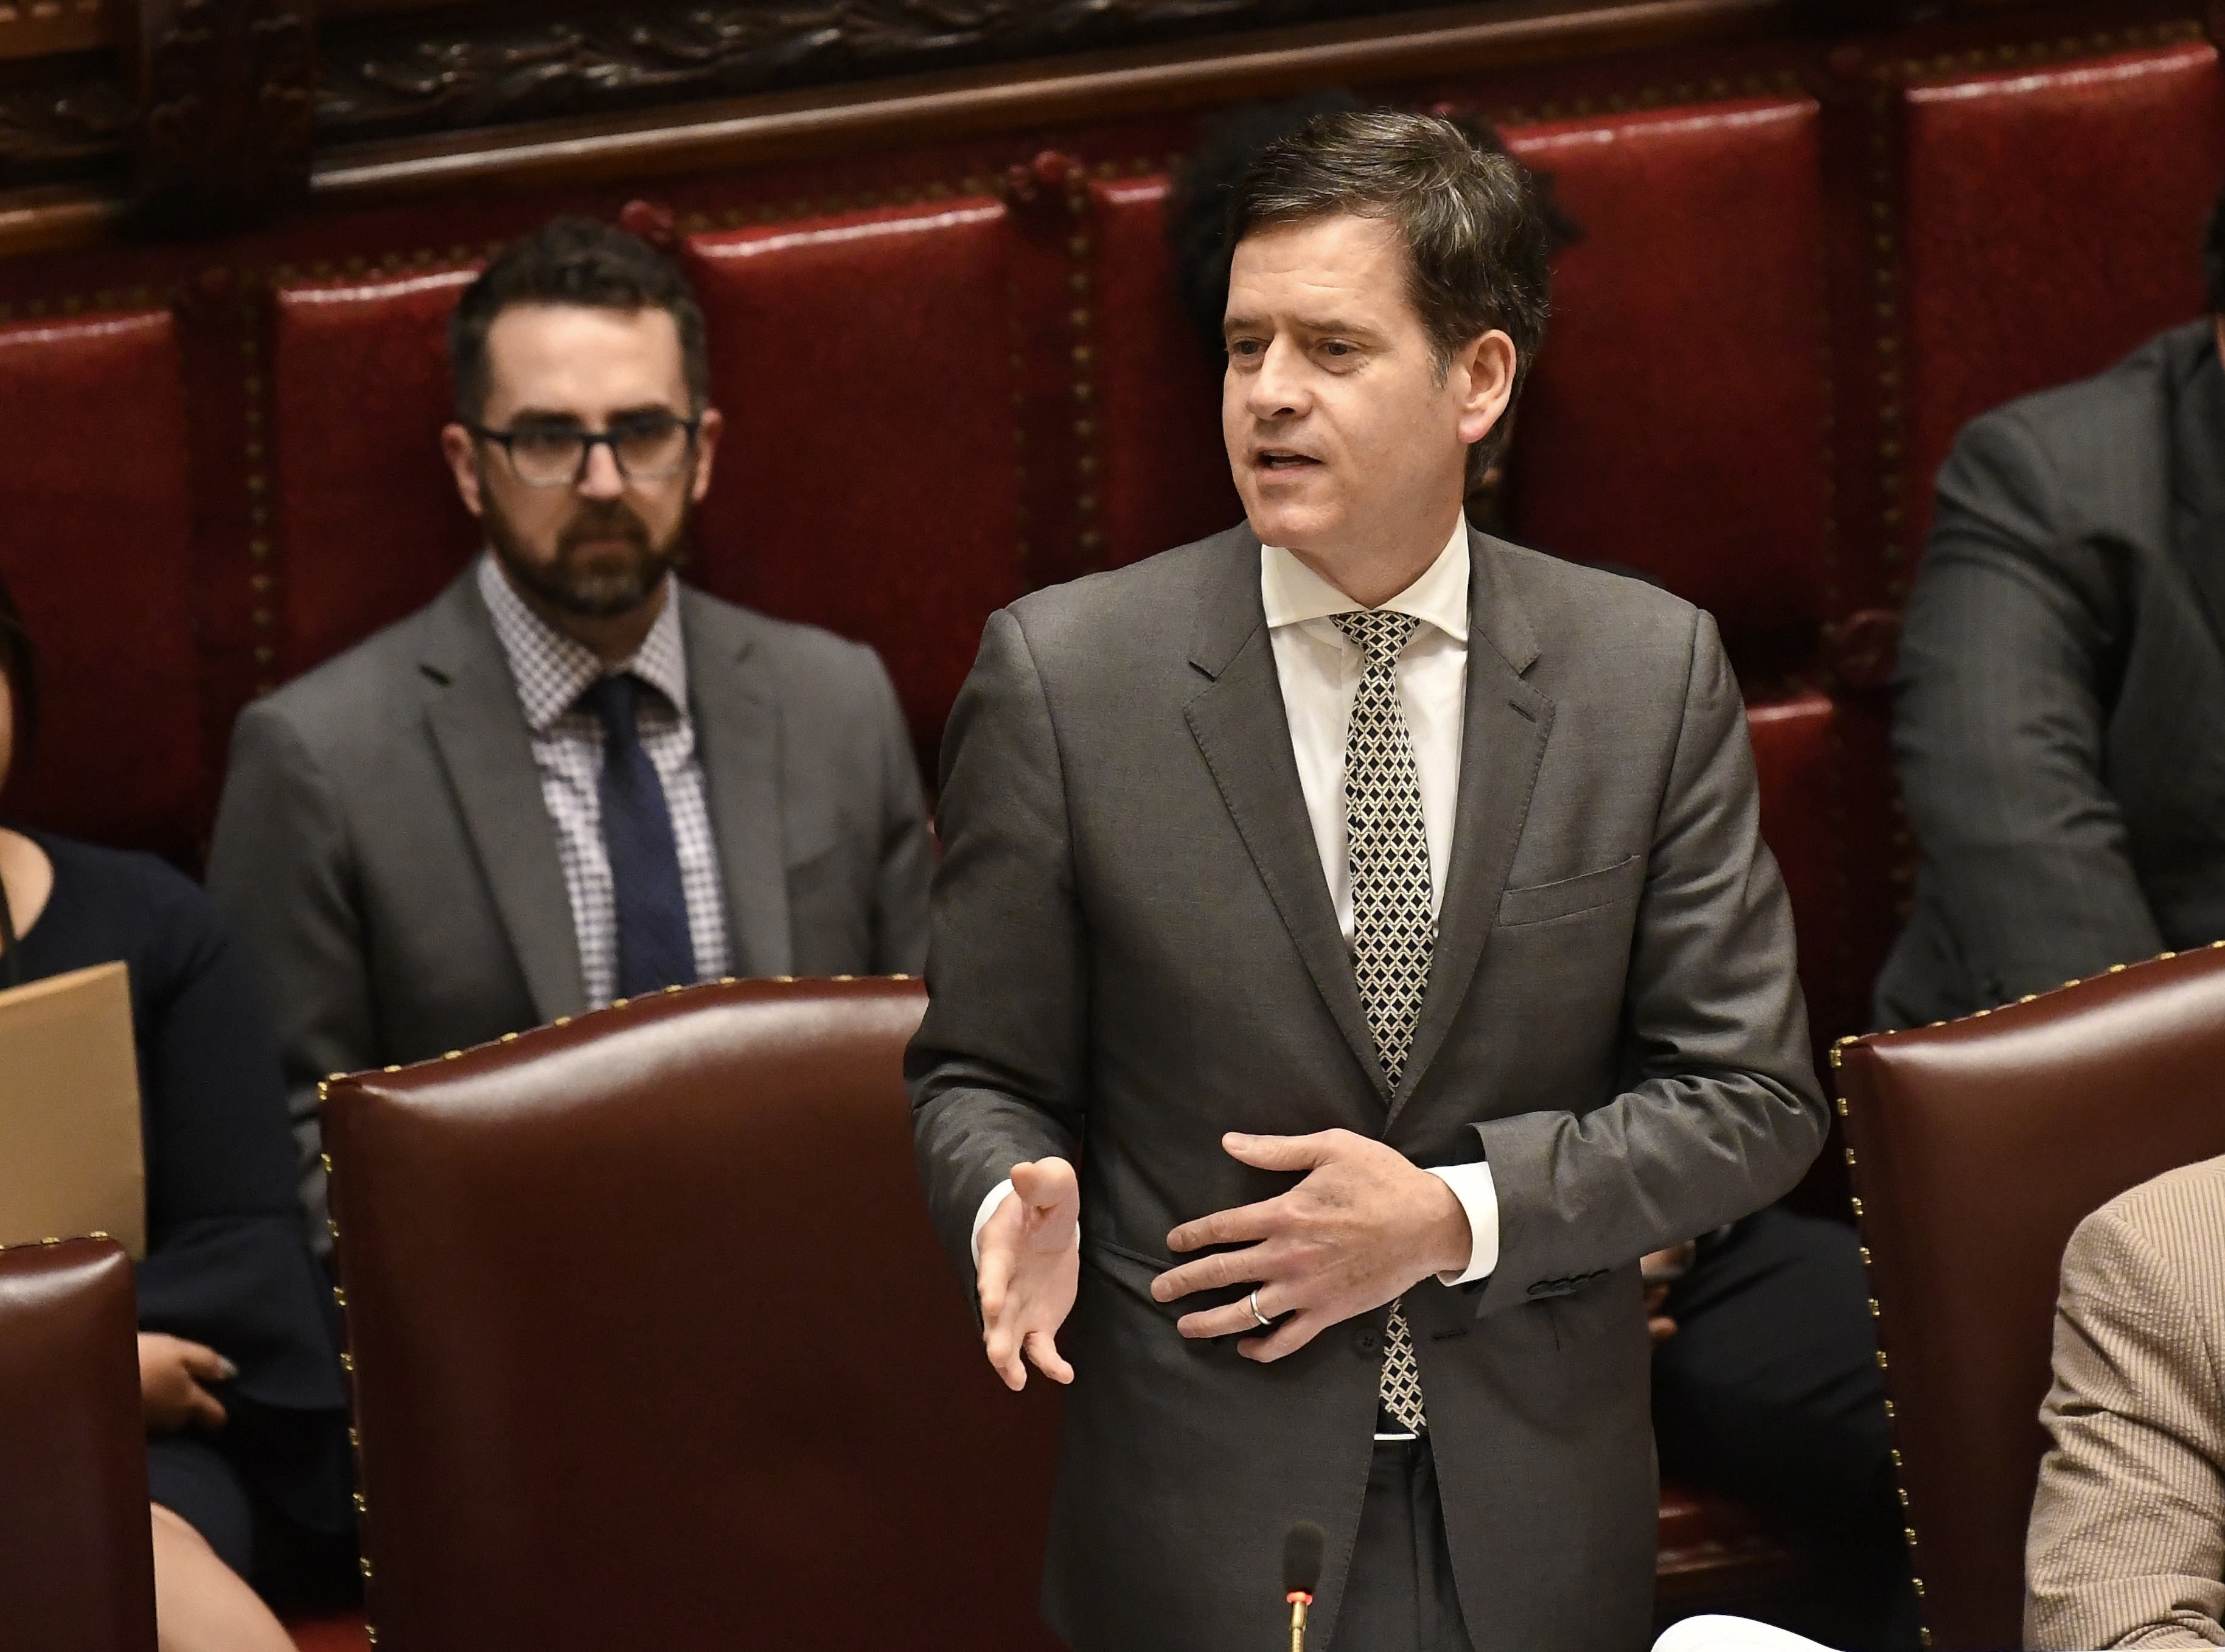 State Sen. Brad Hoylman speaks in the Senate Chamber at the state Capitol in Albany, N.Y. on June 19, 2019.